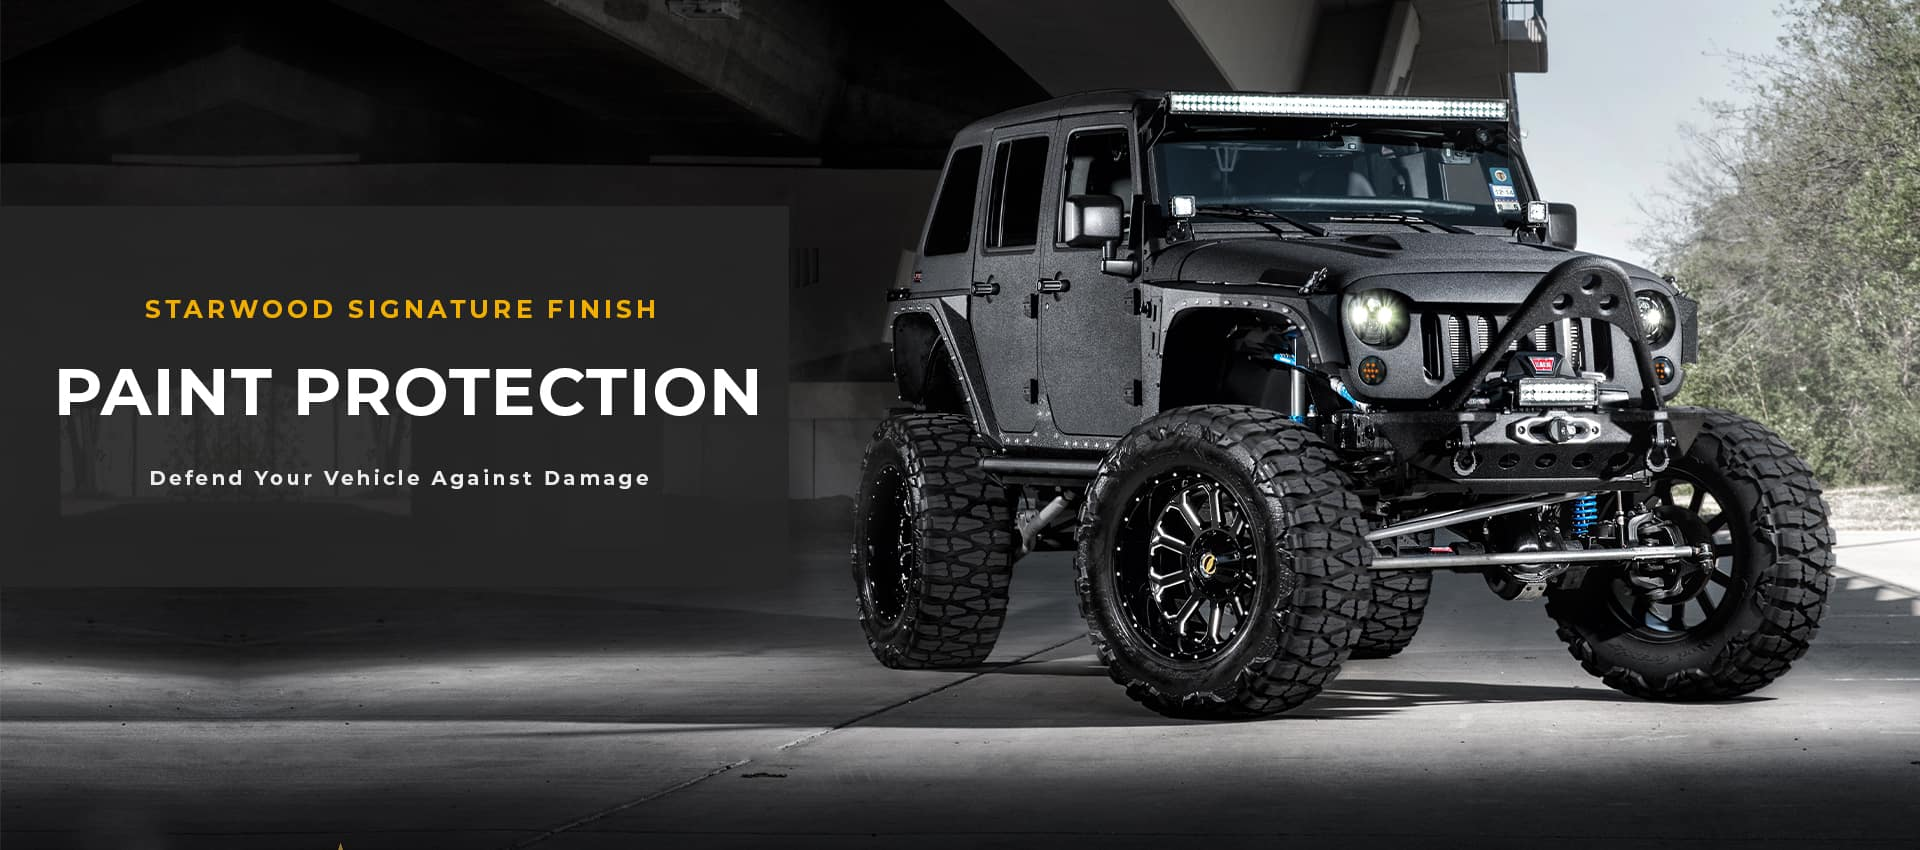 jeep dark paint protection